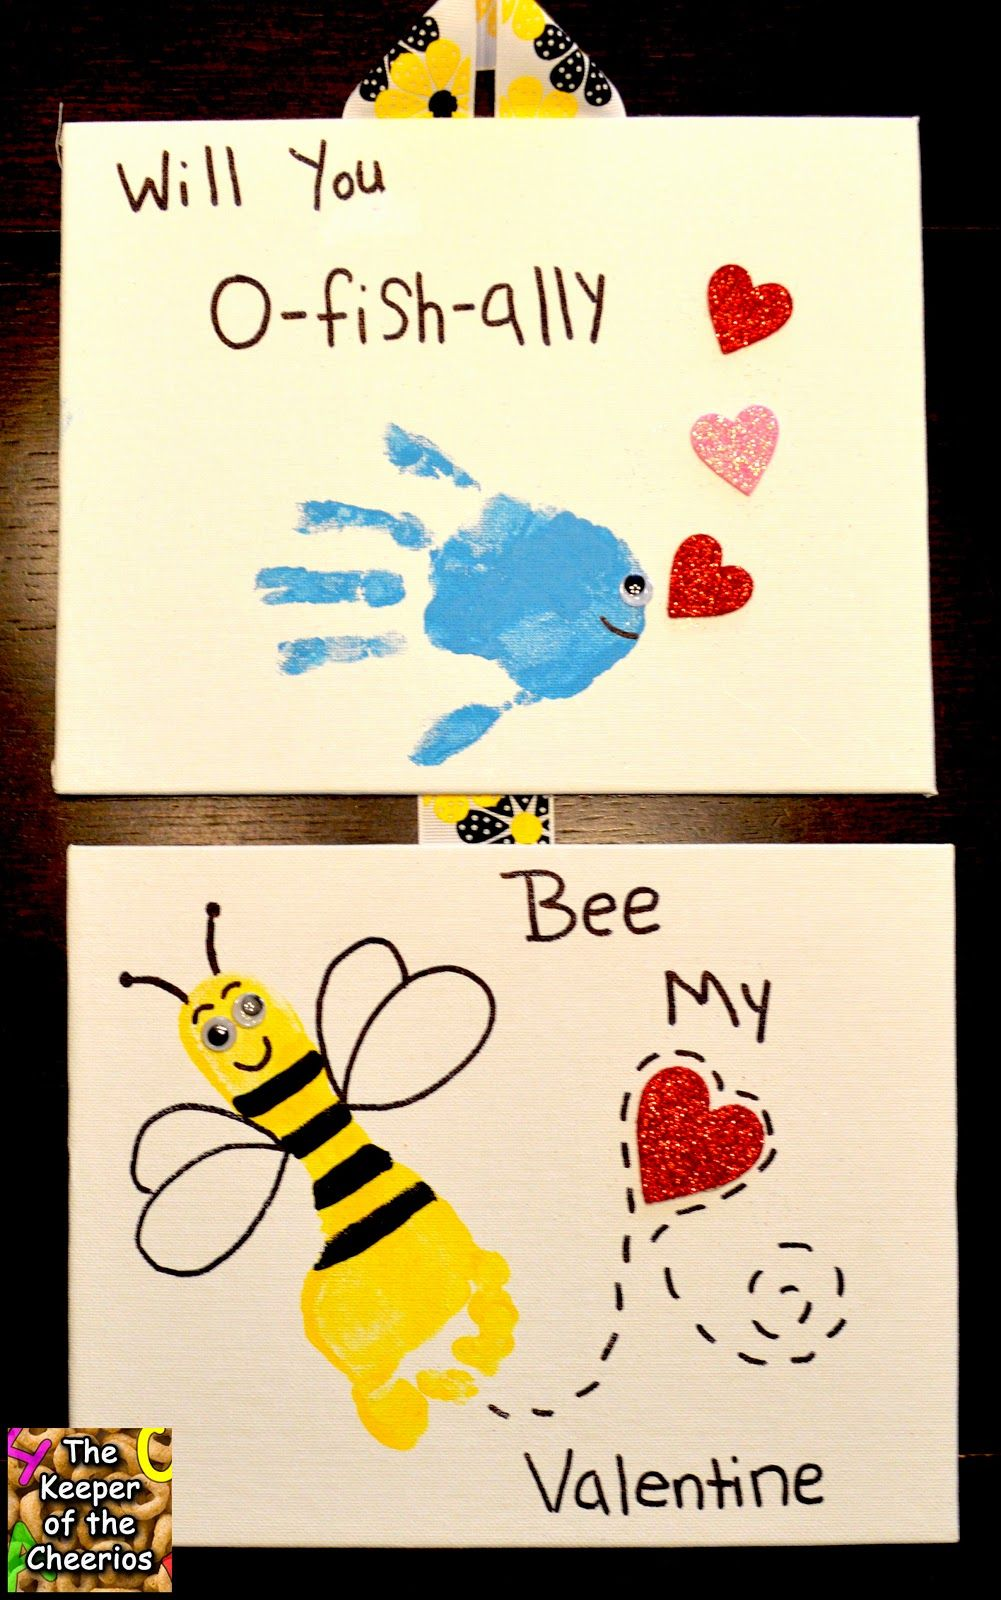 Valentines day Hand and Footprints will you Ofishally Bee my – Bee My Valentine Card